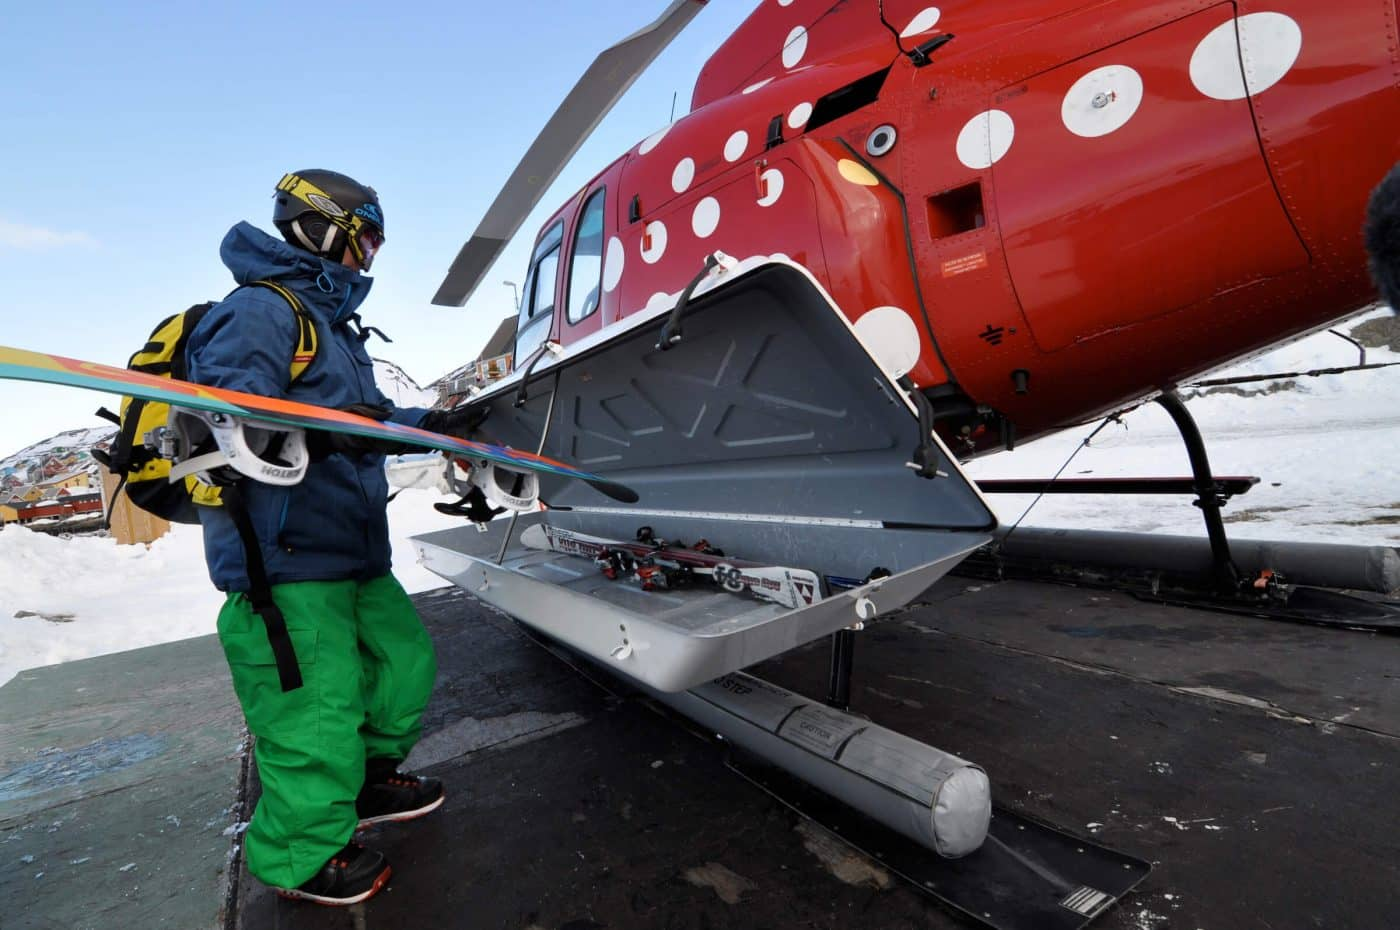 Stefan Gimpl loading up the gear to go heliboarding near Kangaamiut and the Eternity Fjord in Greenland. By Mads Pihl